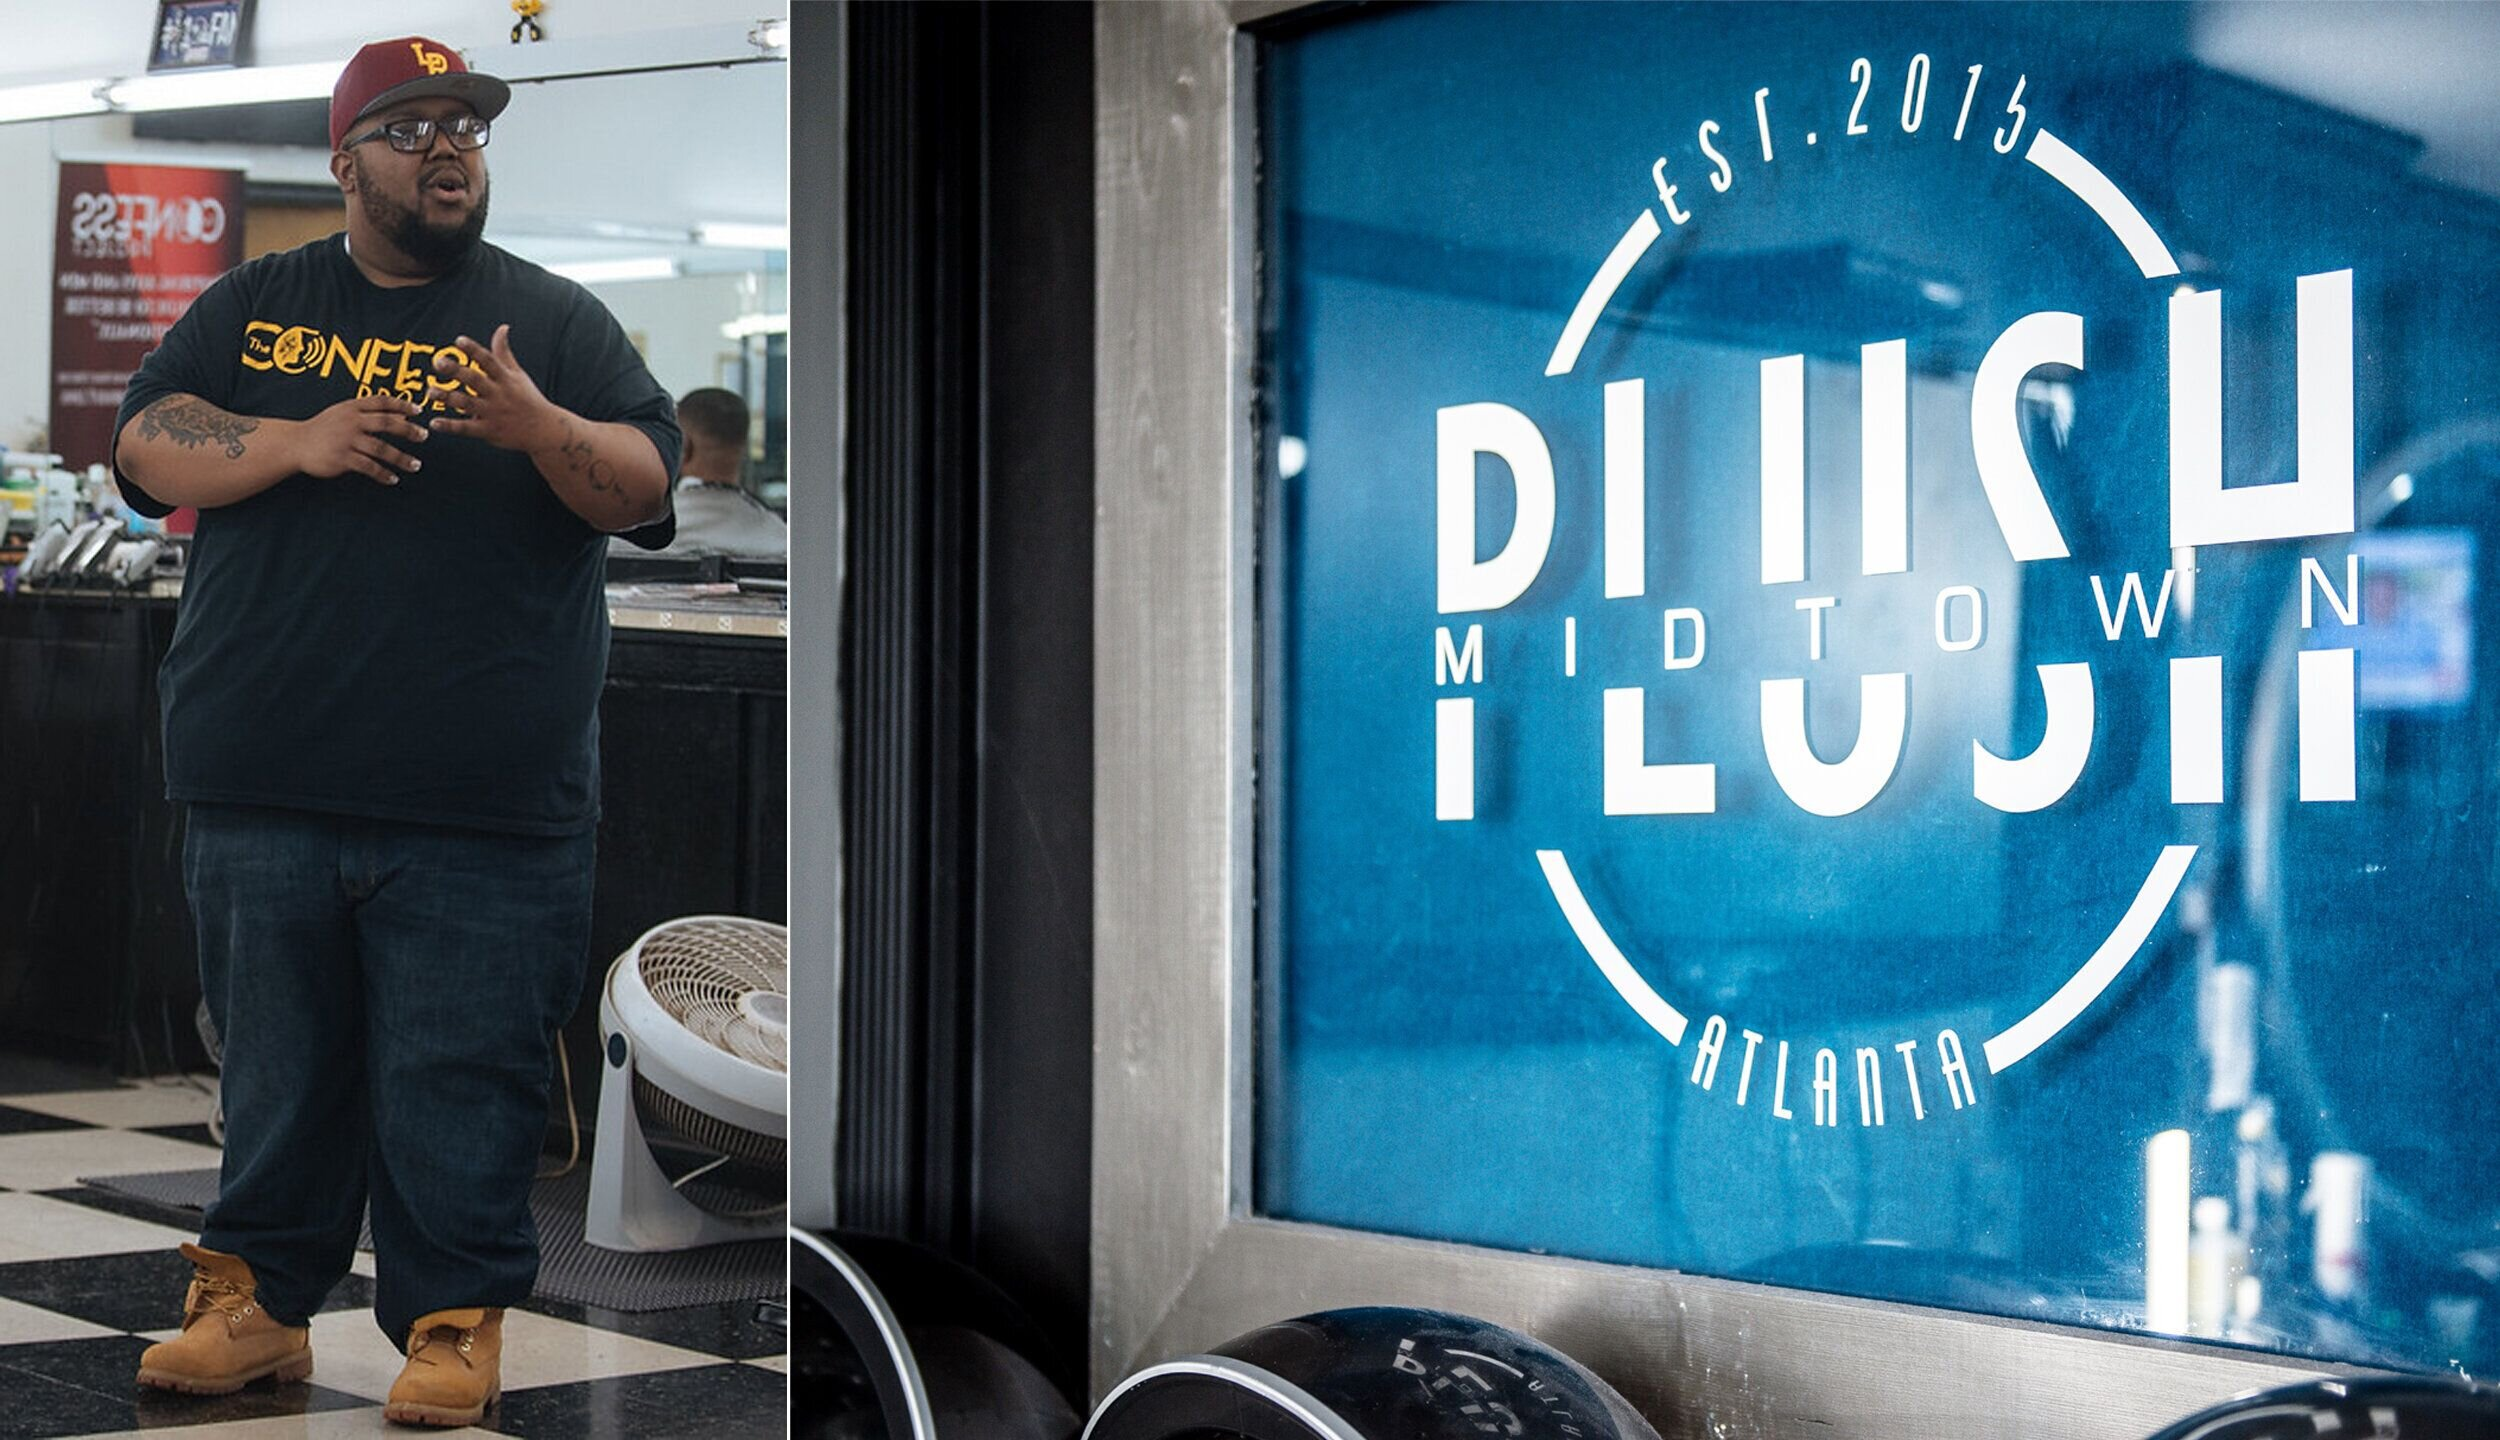 Left: Lorenzo Lewis of The Confess Project gives a presentation at a barbershop in Irmo, South Carolina. Right: The interior of Plush Midtown. Santanna Photography / Marcus Ingram for HuffPost